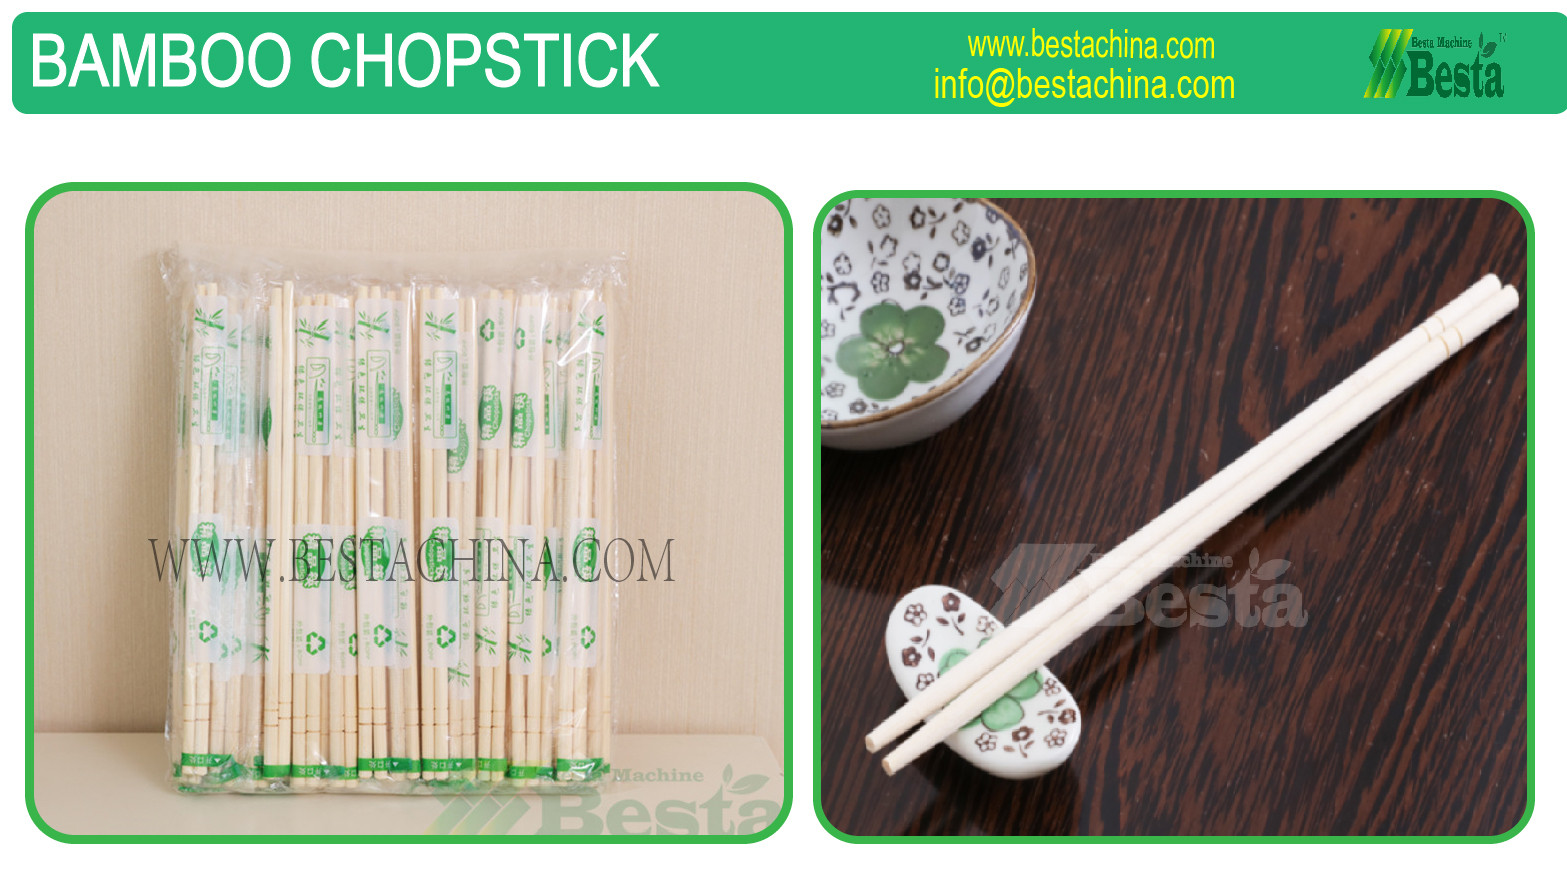 ROUND CHOPSTICK MACHINE